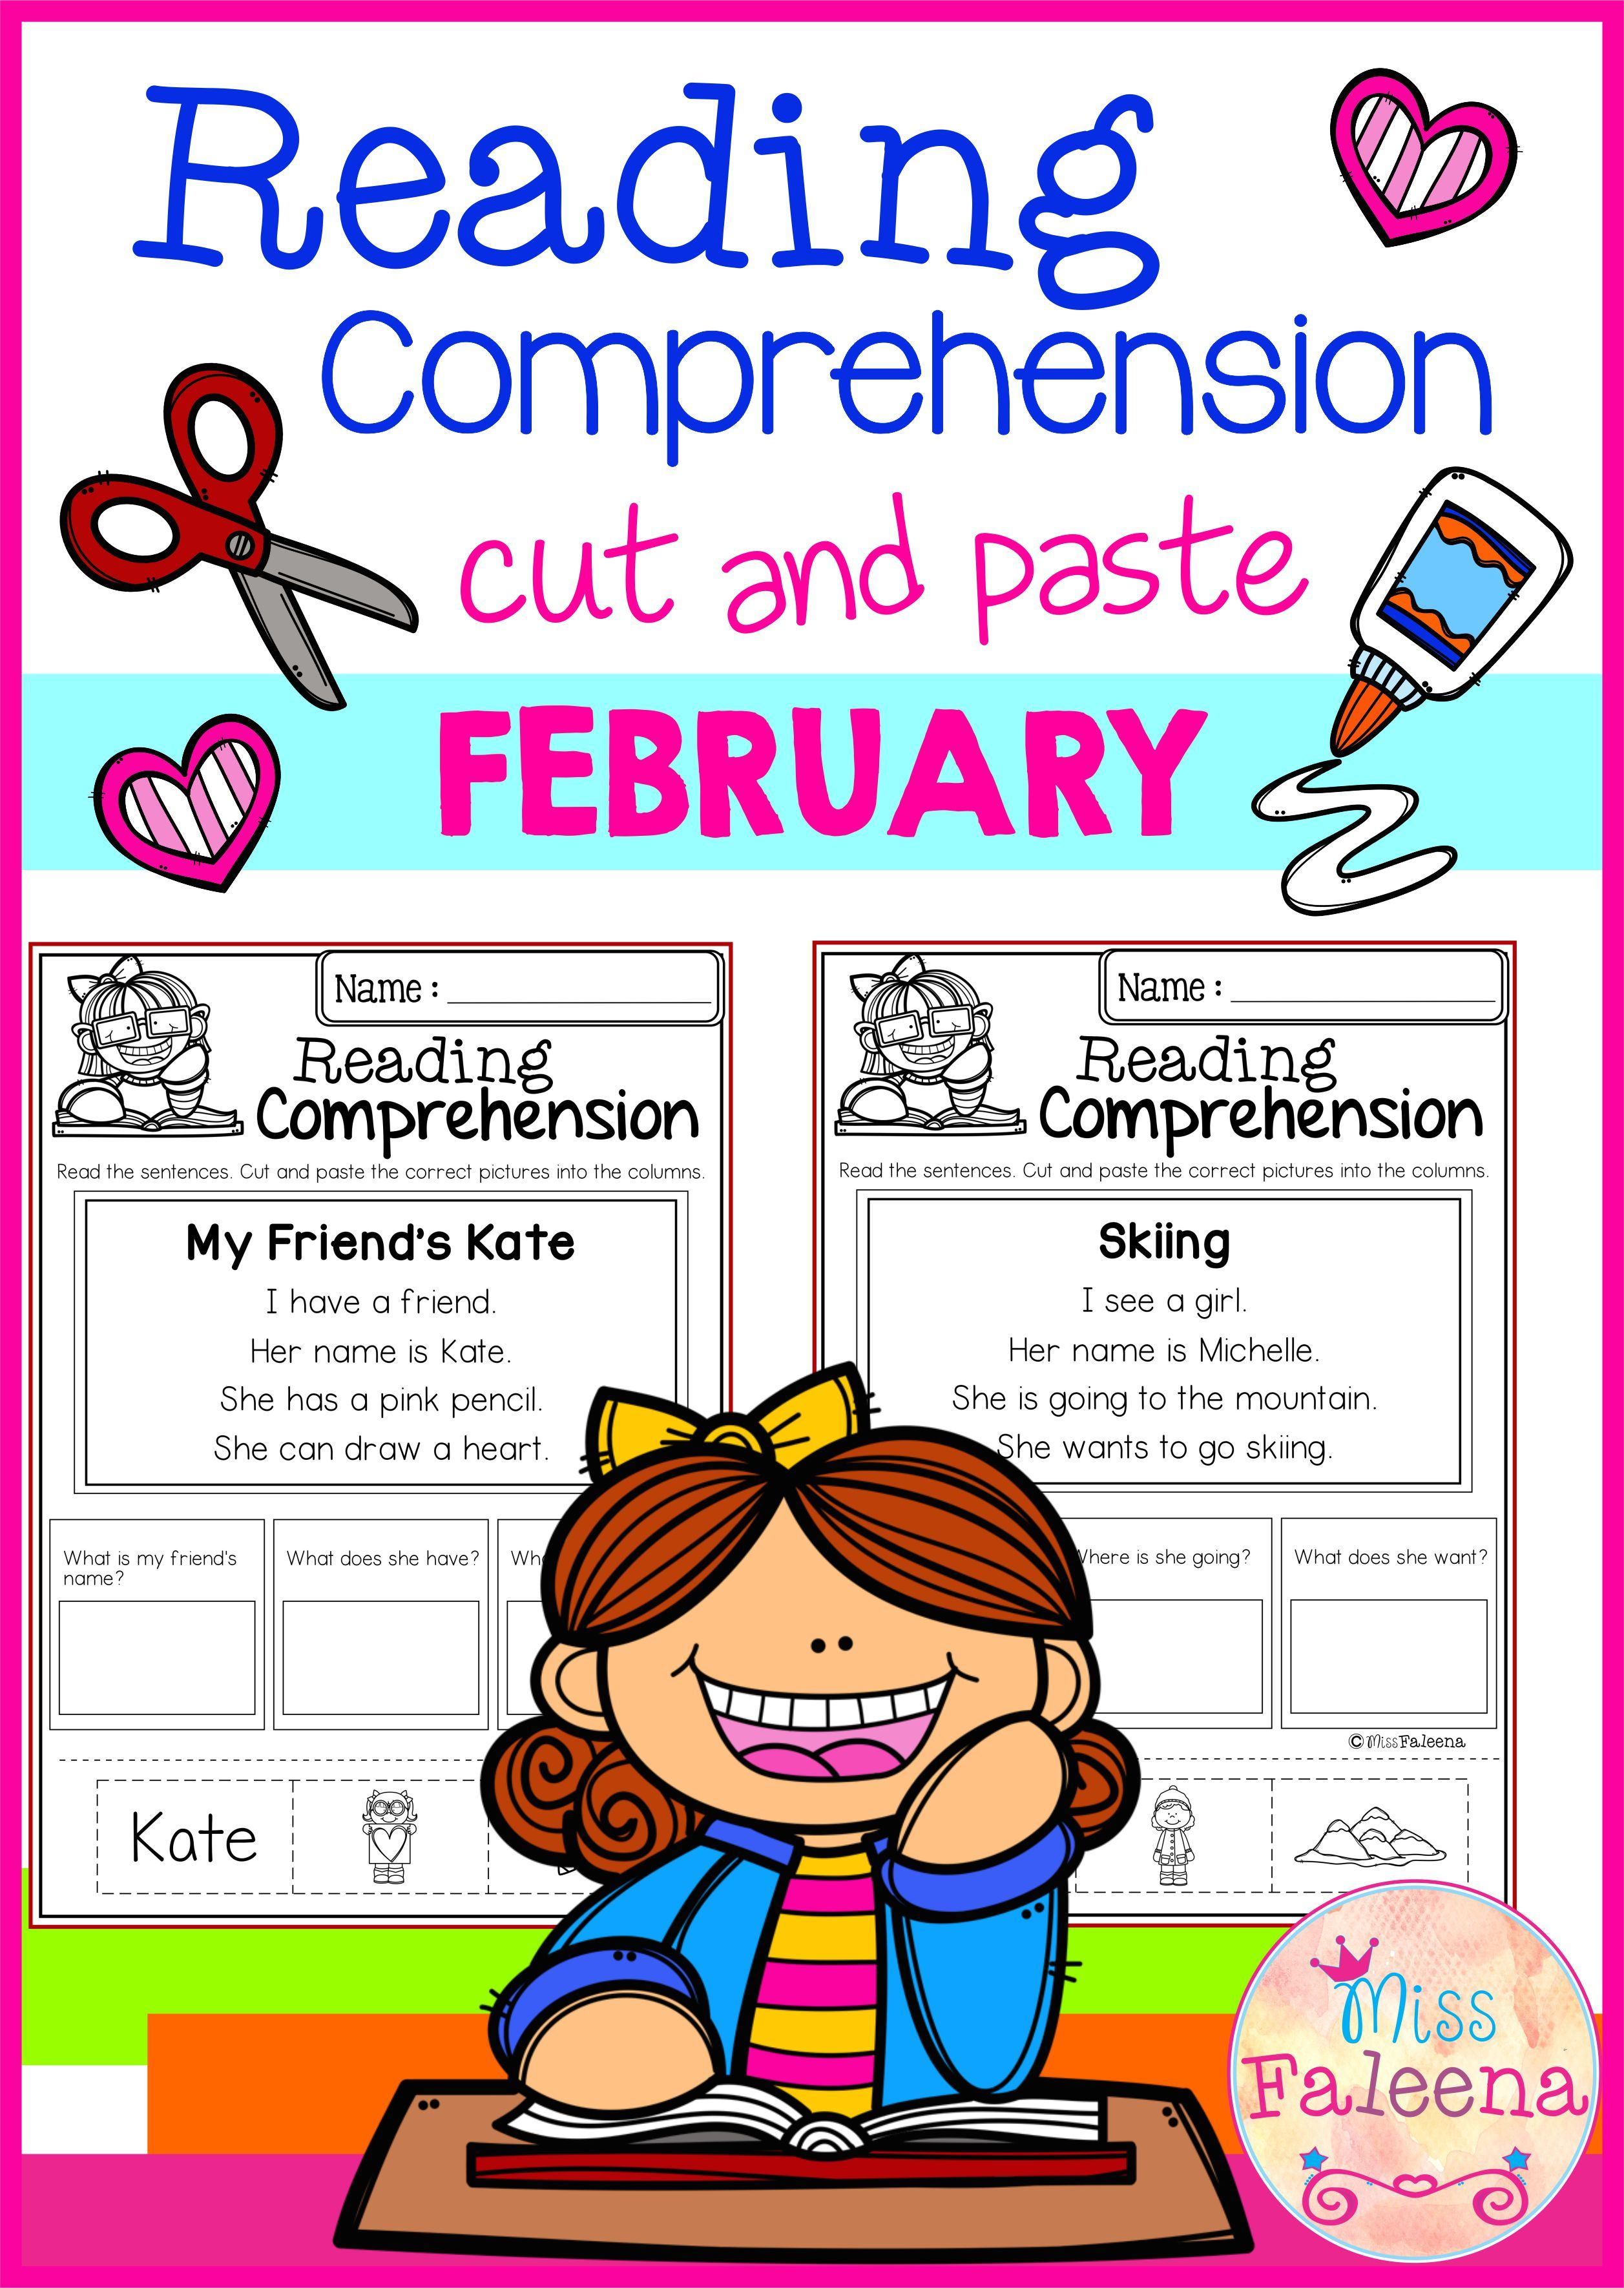 Pin On February Activities For The Holidays